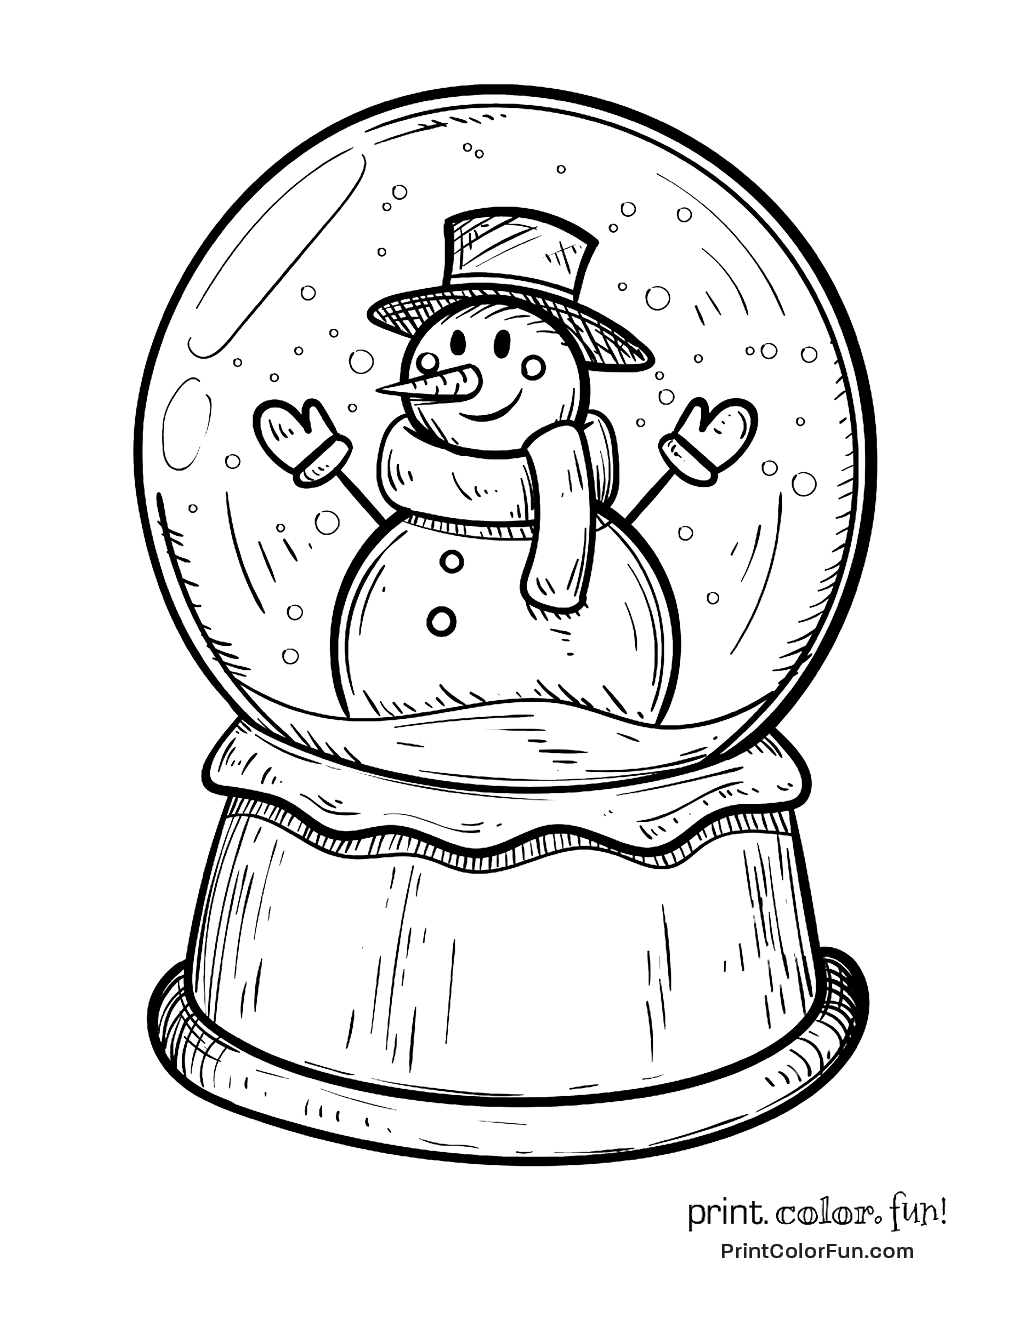 1020x1320 Winter Snow Globe With Snowman Coloring Page Print Color Fun